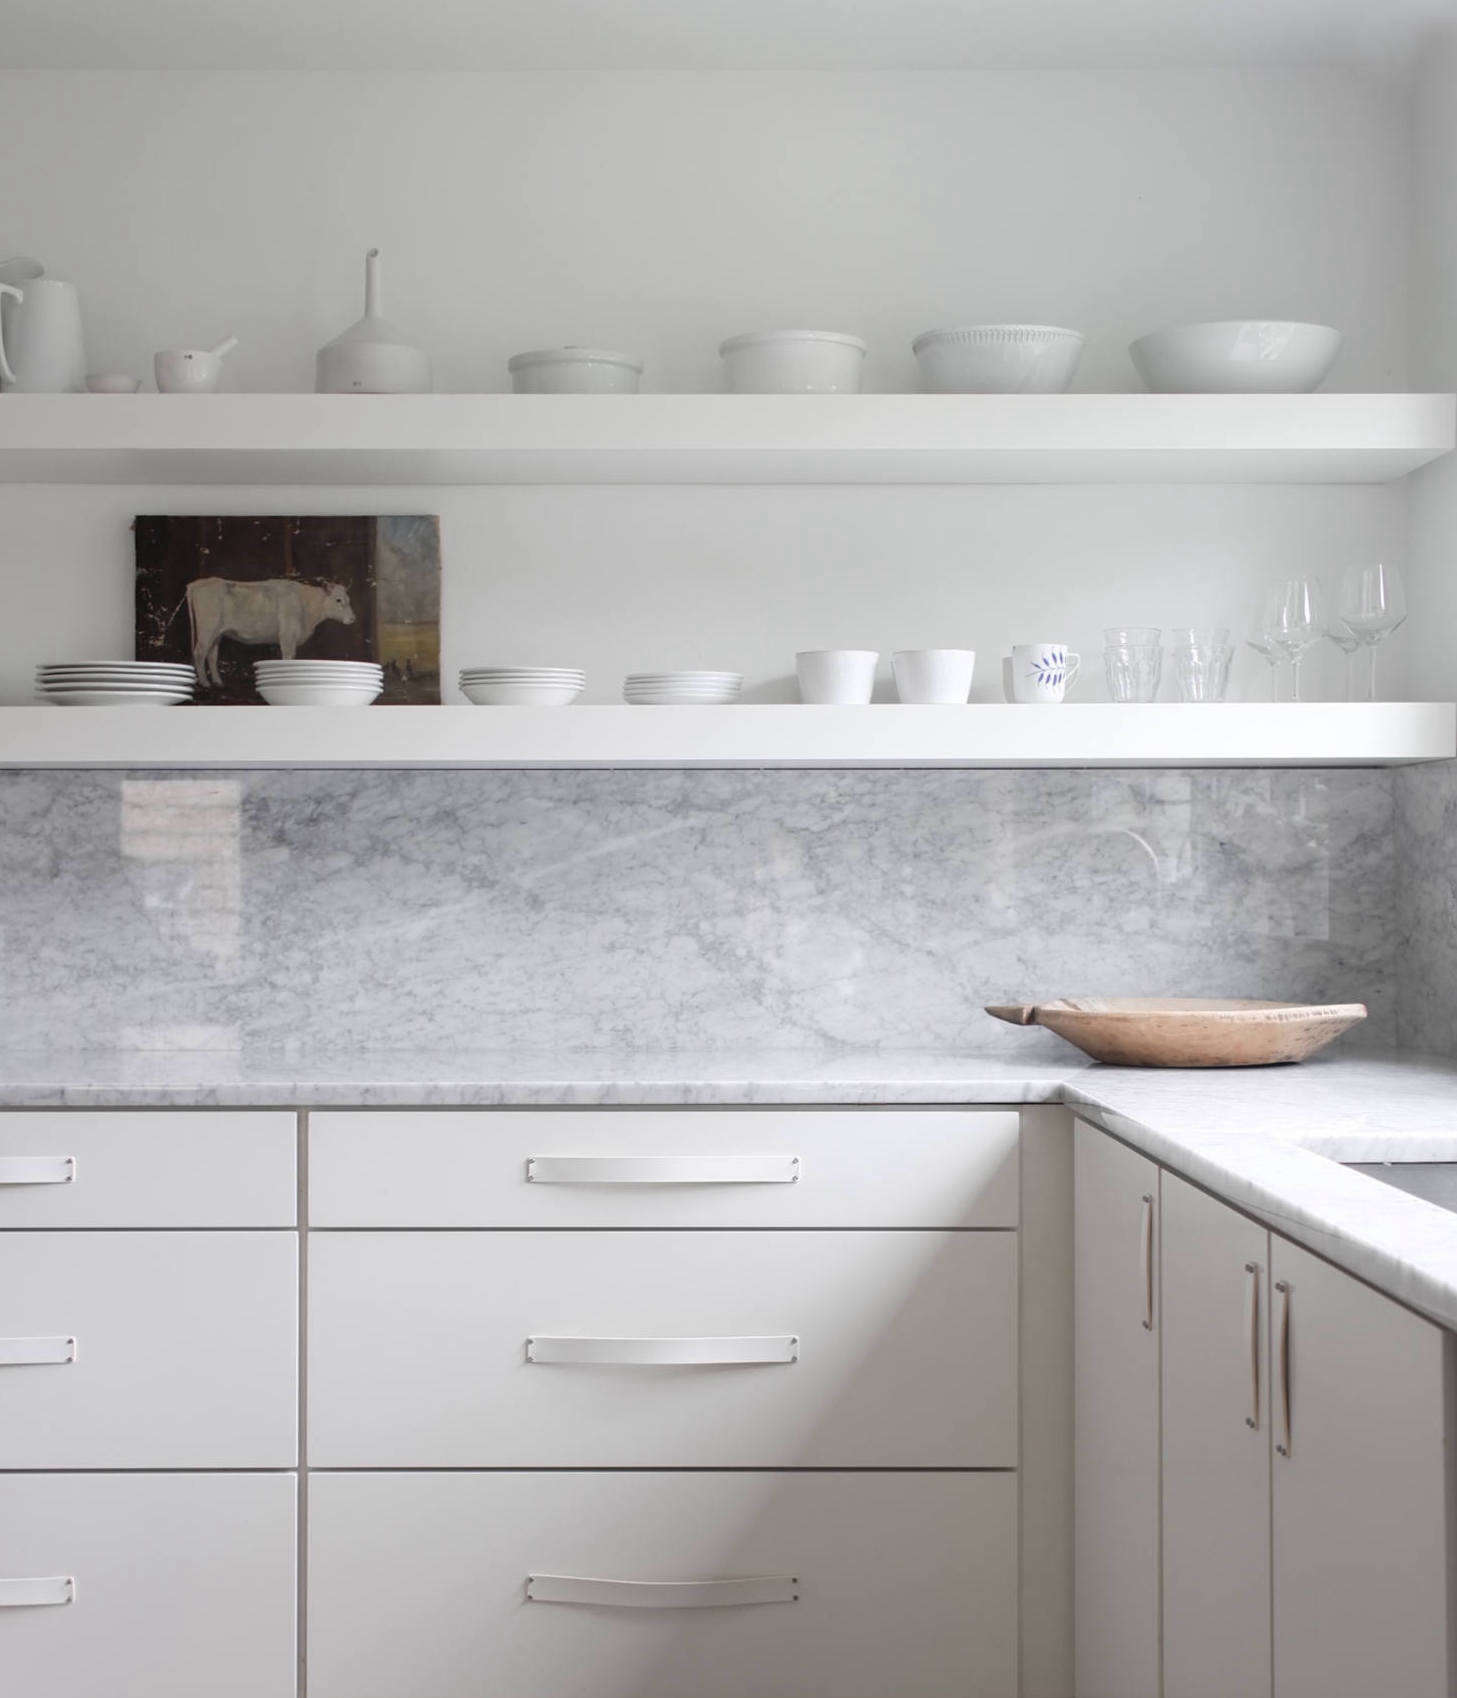 I designed my own kitchen around a solid seamless Carrara marble backsplash and counters. For more on this kitchen (and the rest of the house) seeBefore & After: Remodelista Contributing Editor Izabella Simmons Shares Her Scandi-Inspired Remodel. Photograph by Izabella Simmons.